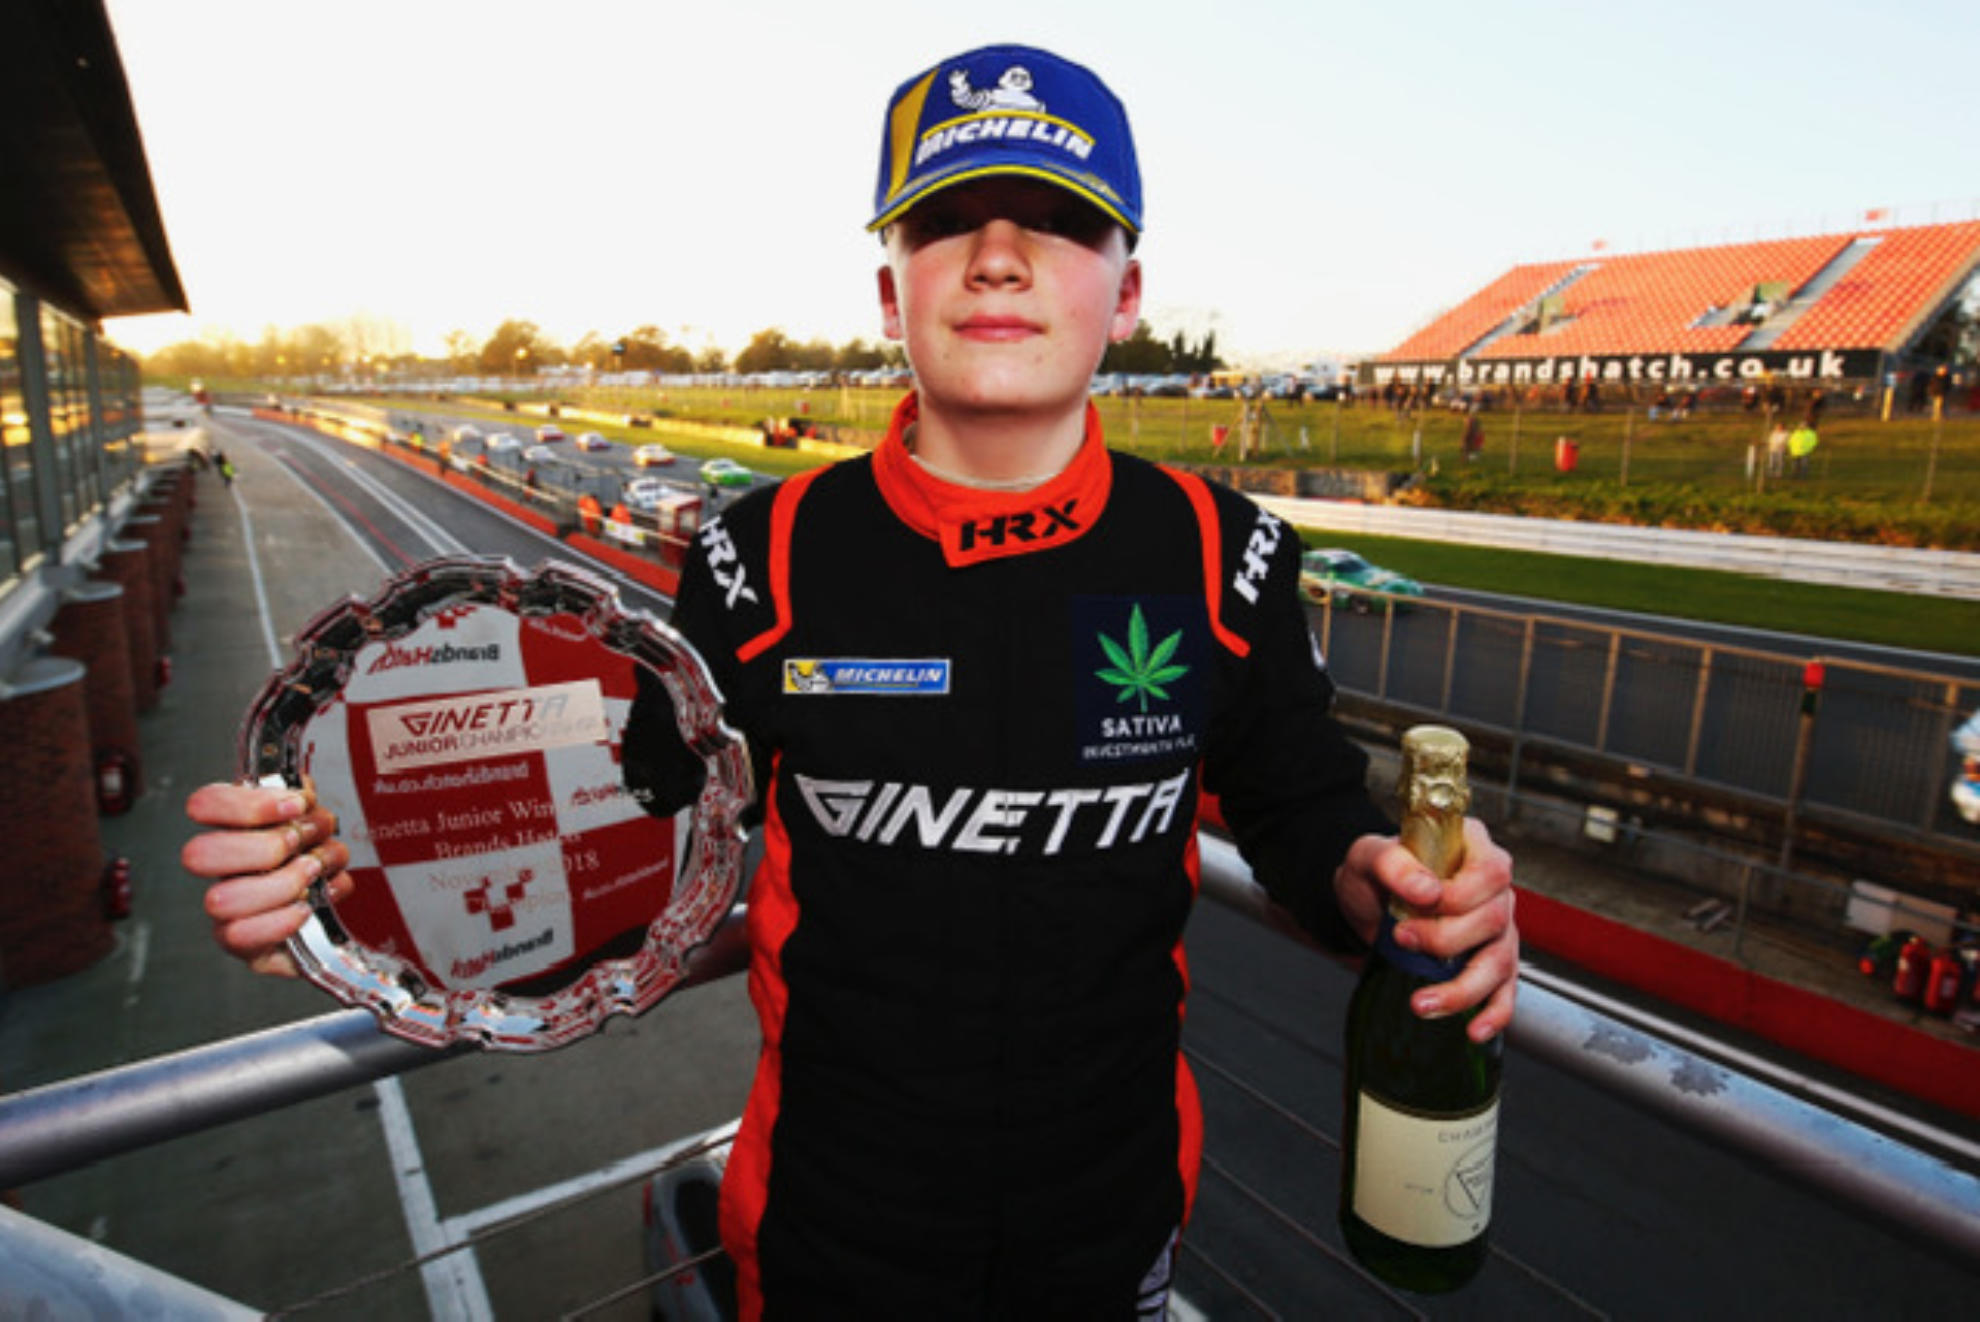 James Hedley Targets The Top In 2019 Michelin Ginetta Junior Championship